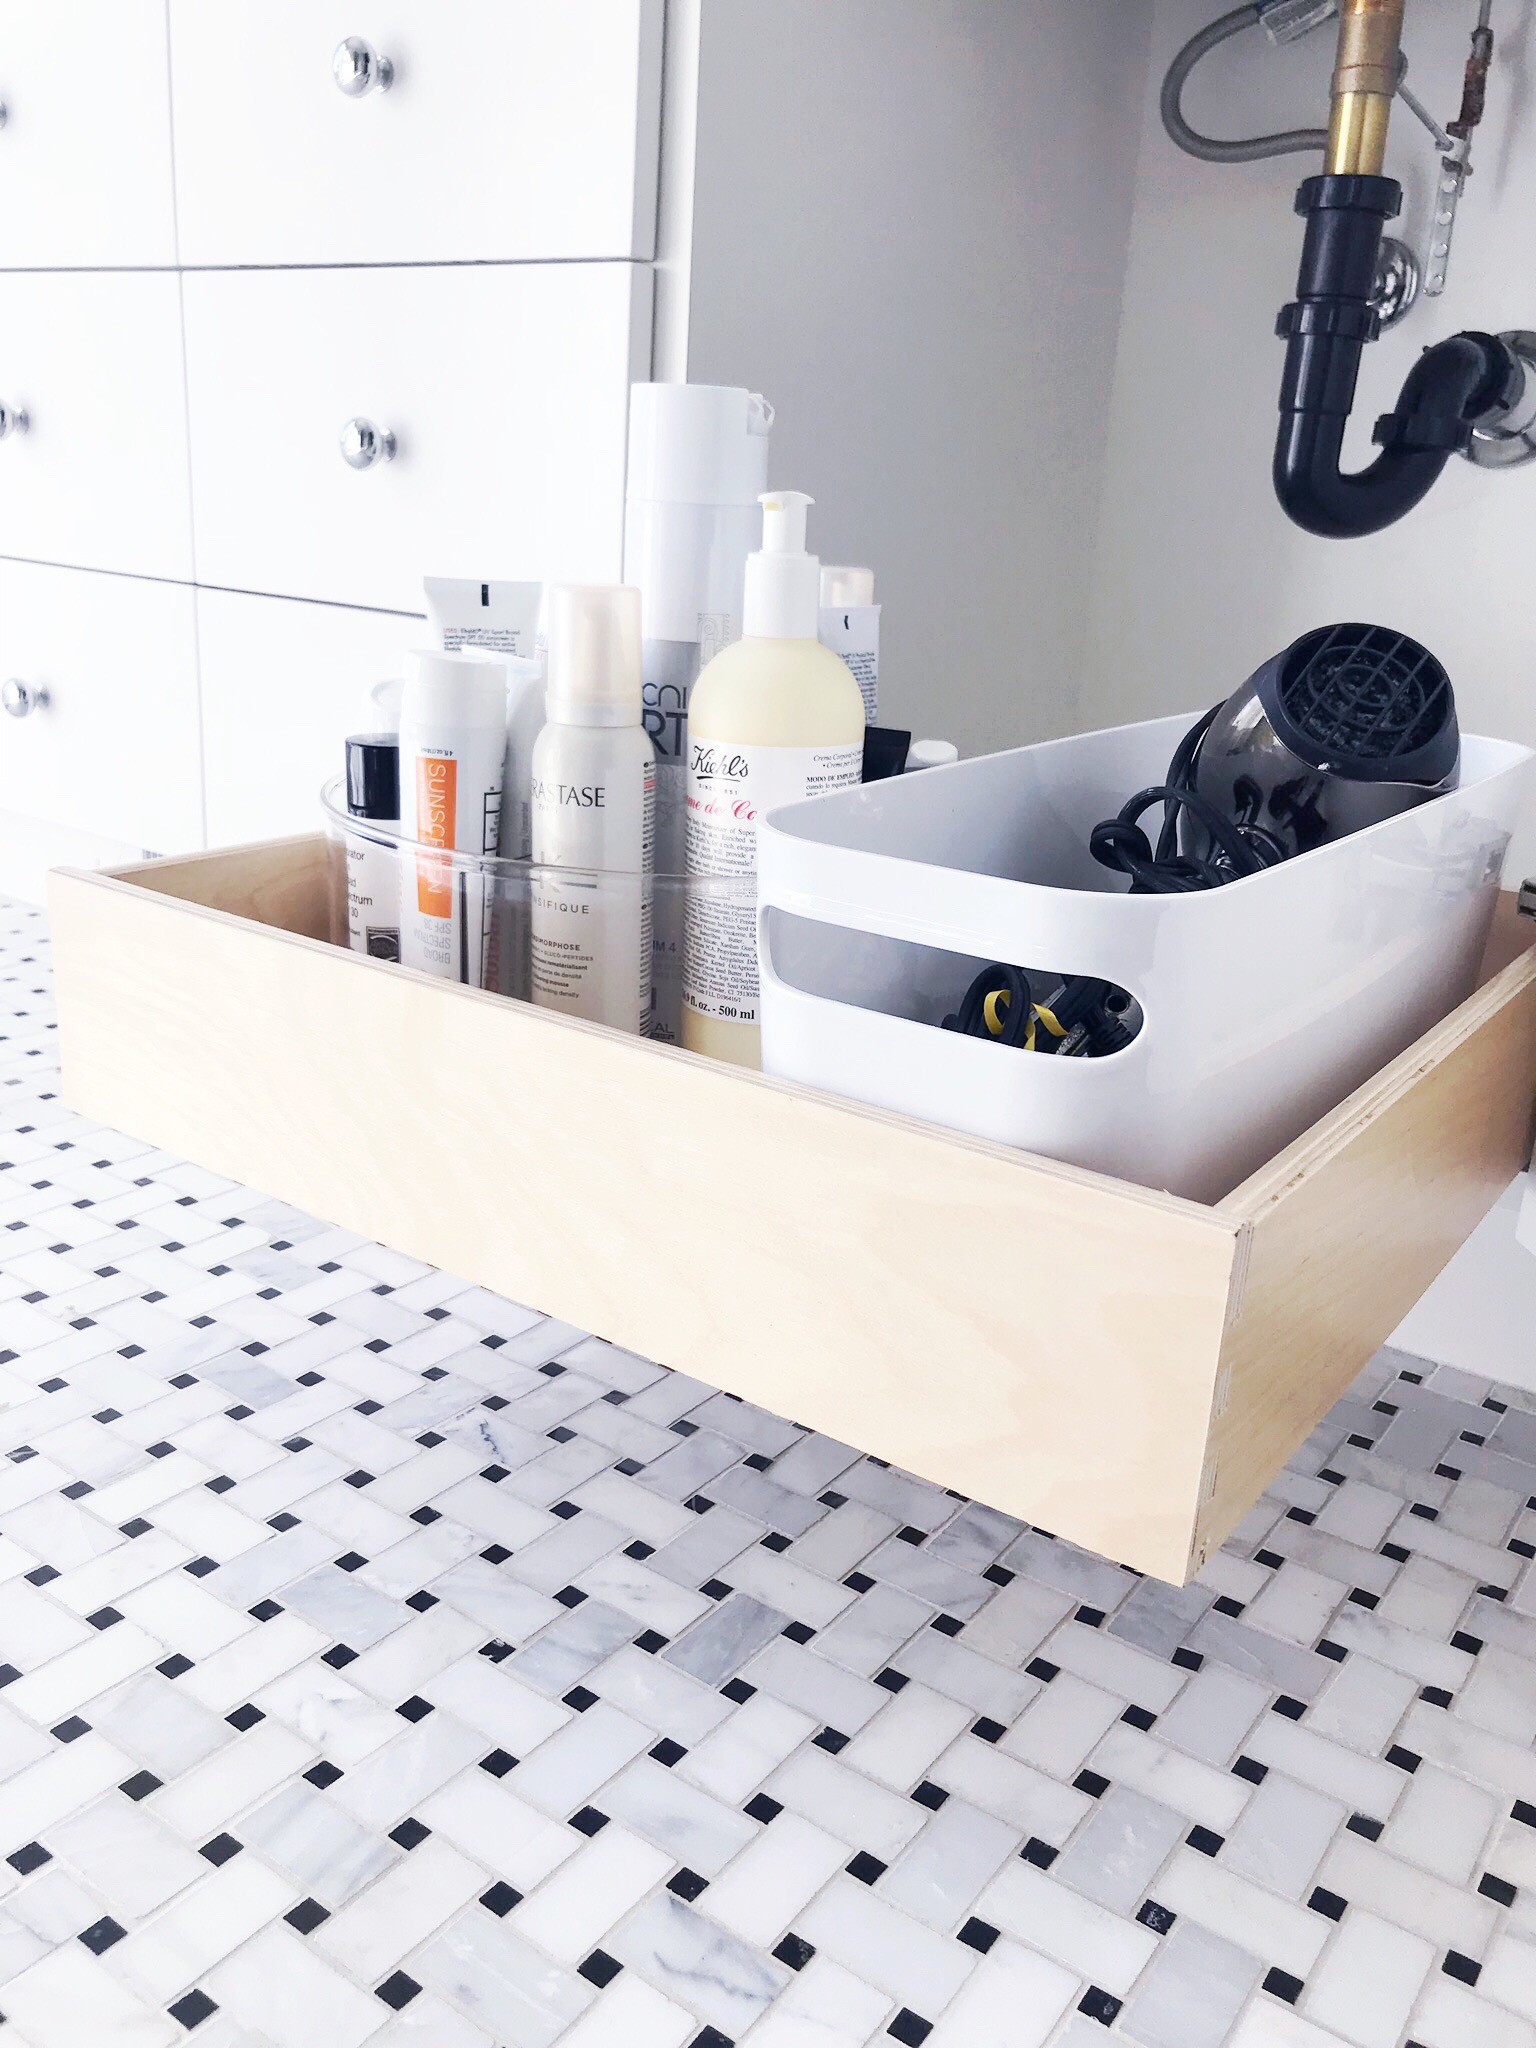 RiOrganize Bathroom Organization